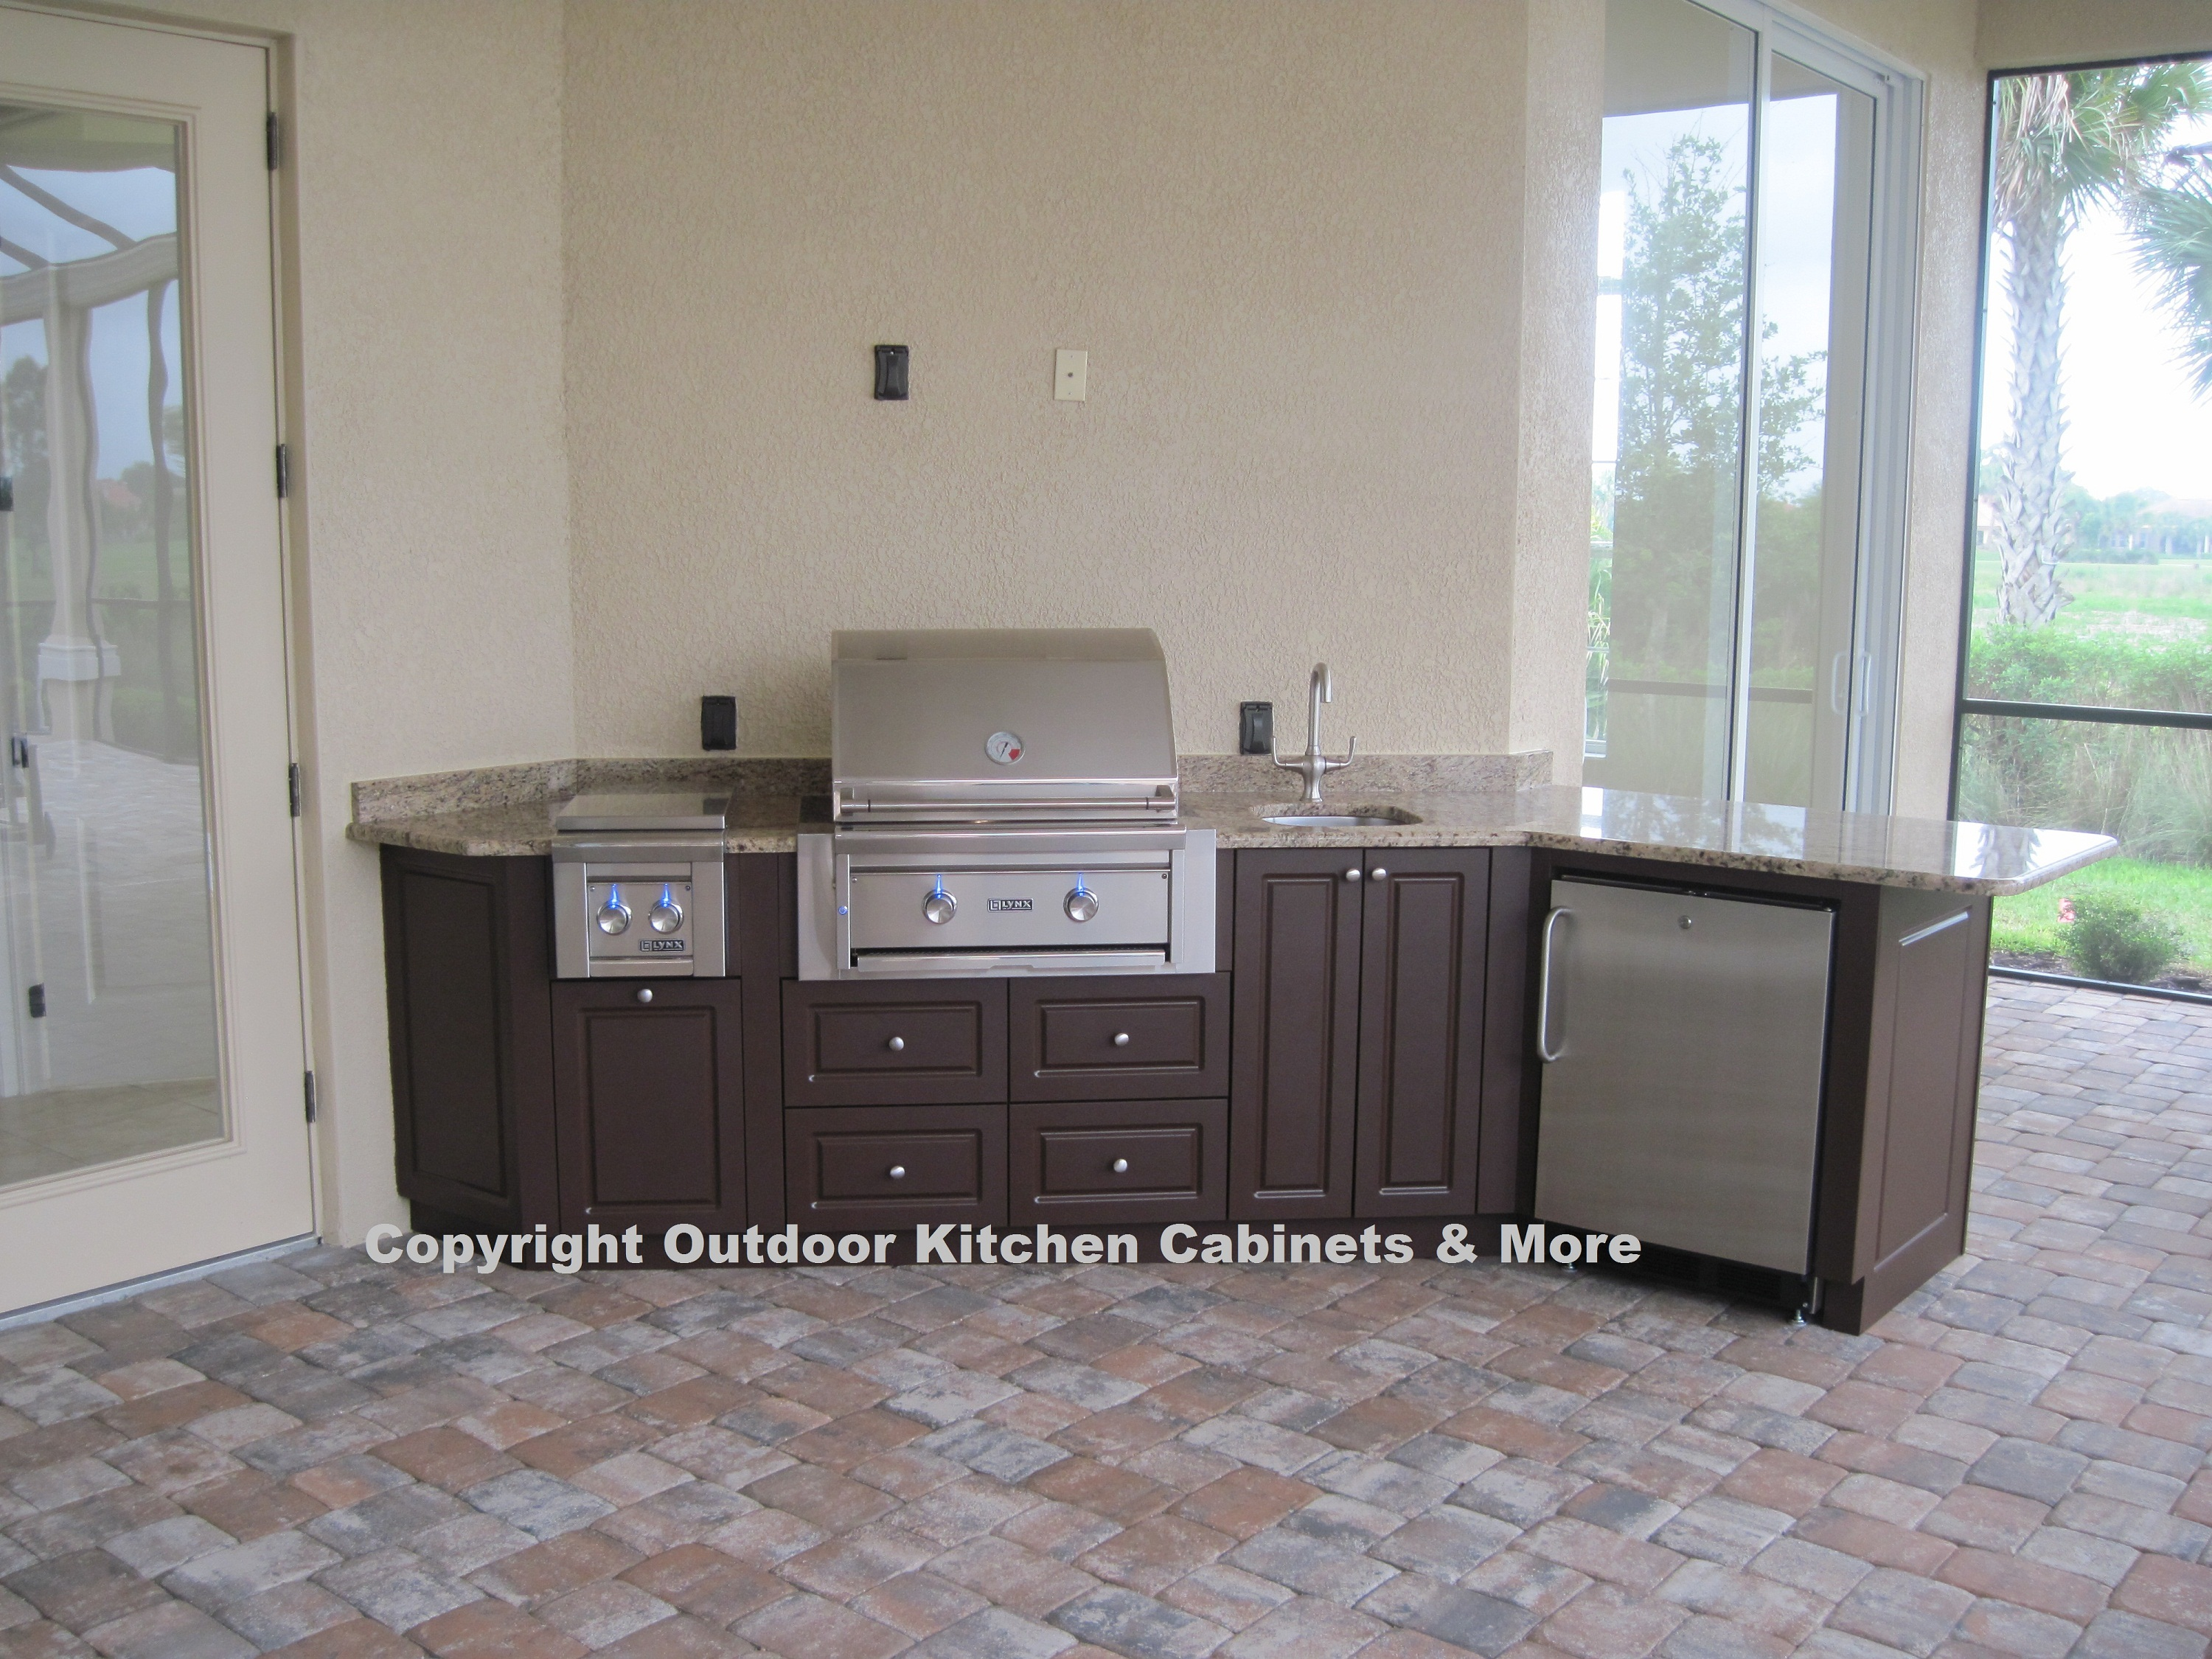 Outdoor kitchen photo gallery outdoor kitchen cabinets for Outdoor kitchen cabinets